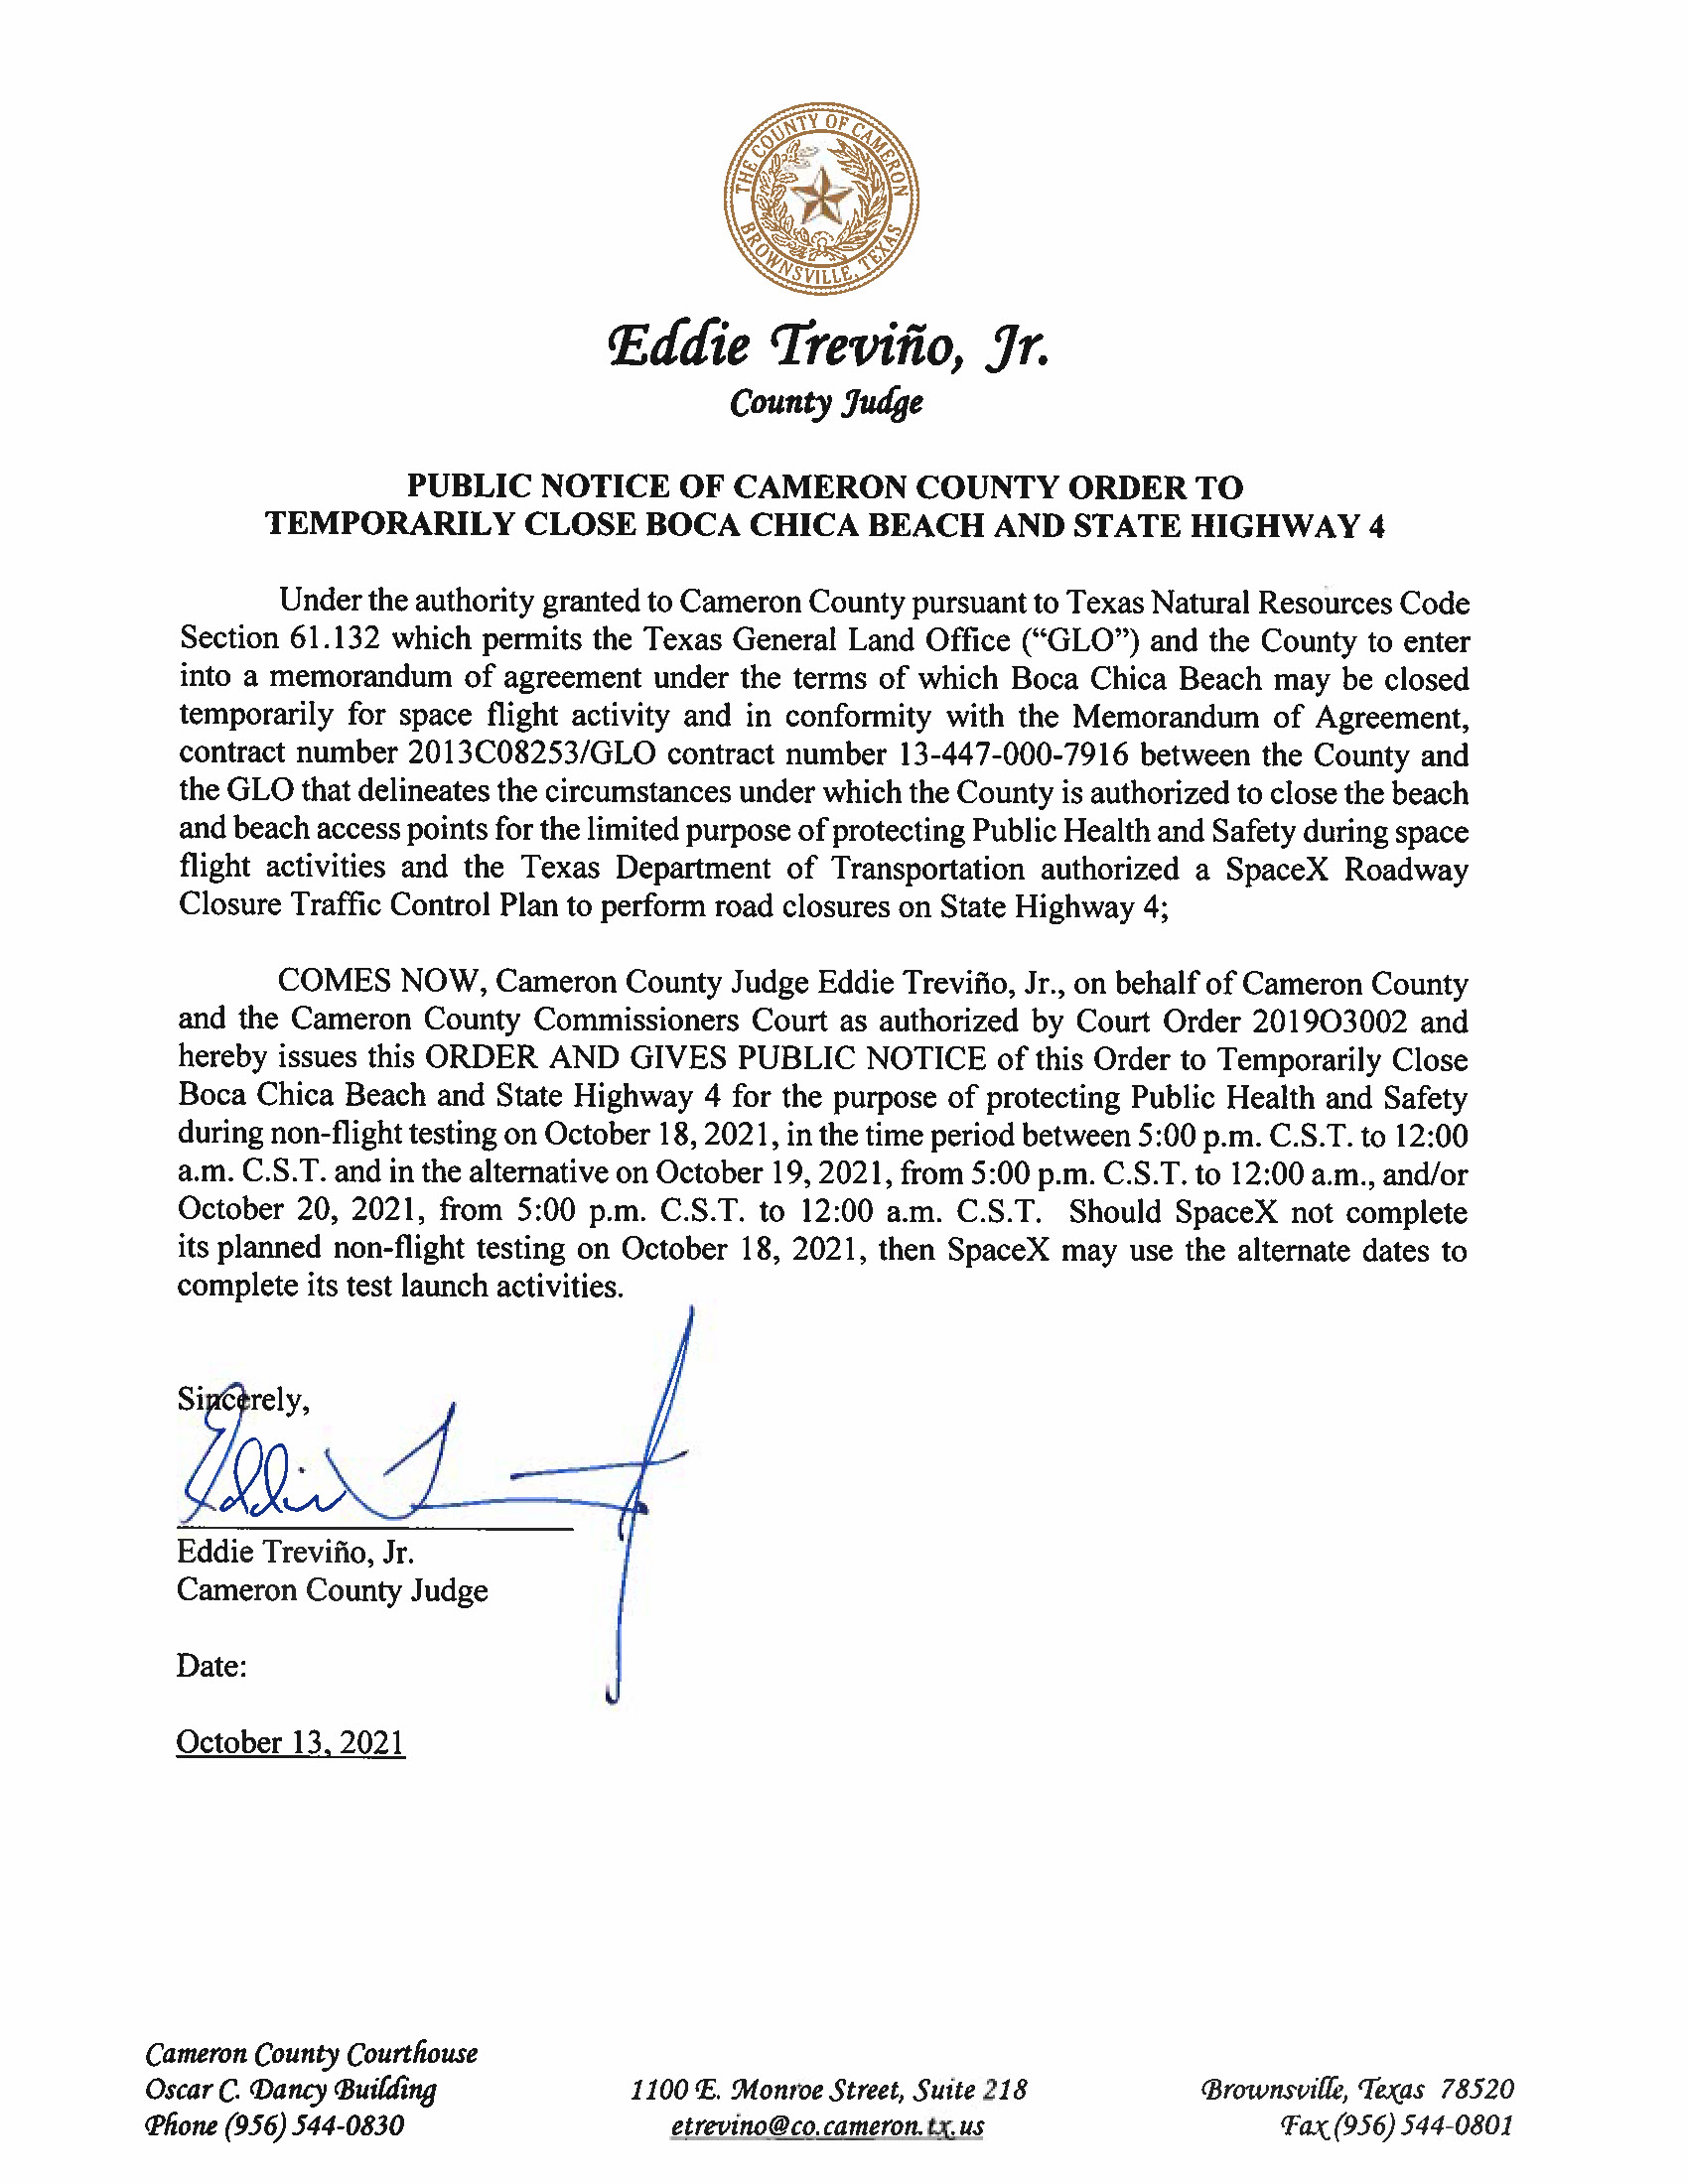 PUBLIC NOTICE OF CAMERON COUNTY ORDER TO TEMP. BEACH CLOSURE AND HWY.10.18.2021